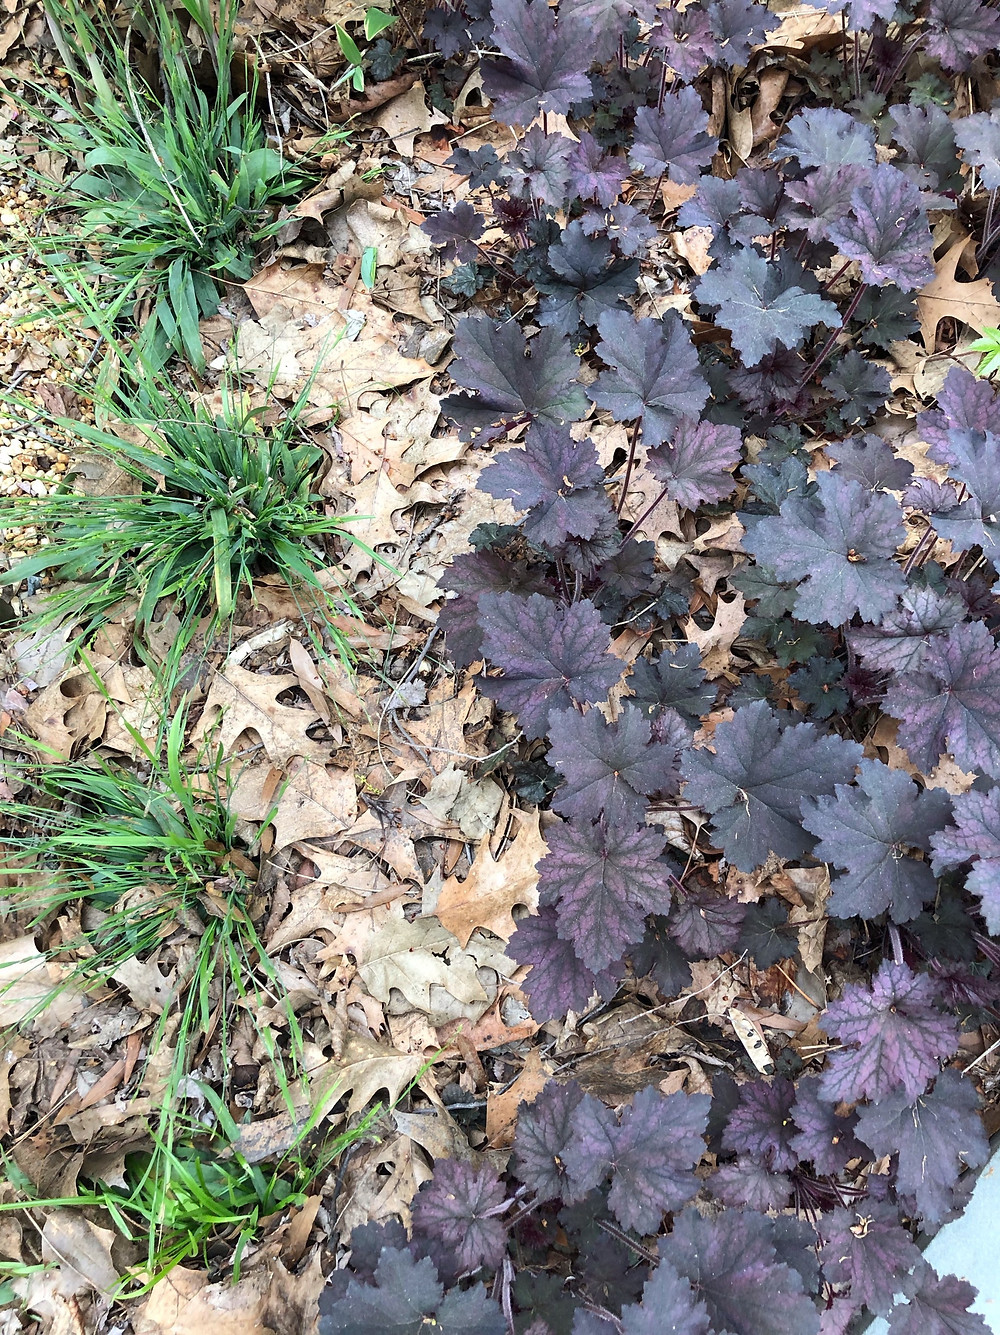 Blue wood sedge and heuchera 'frosted violet'